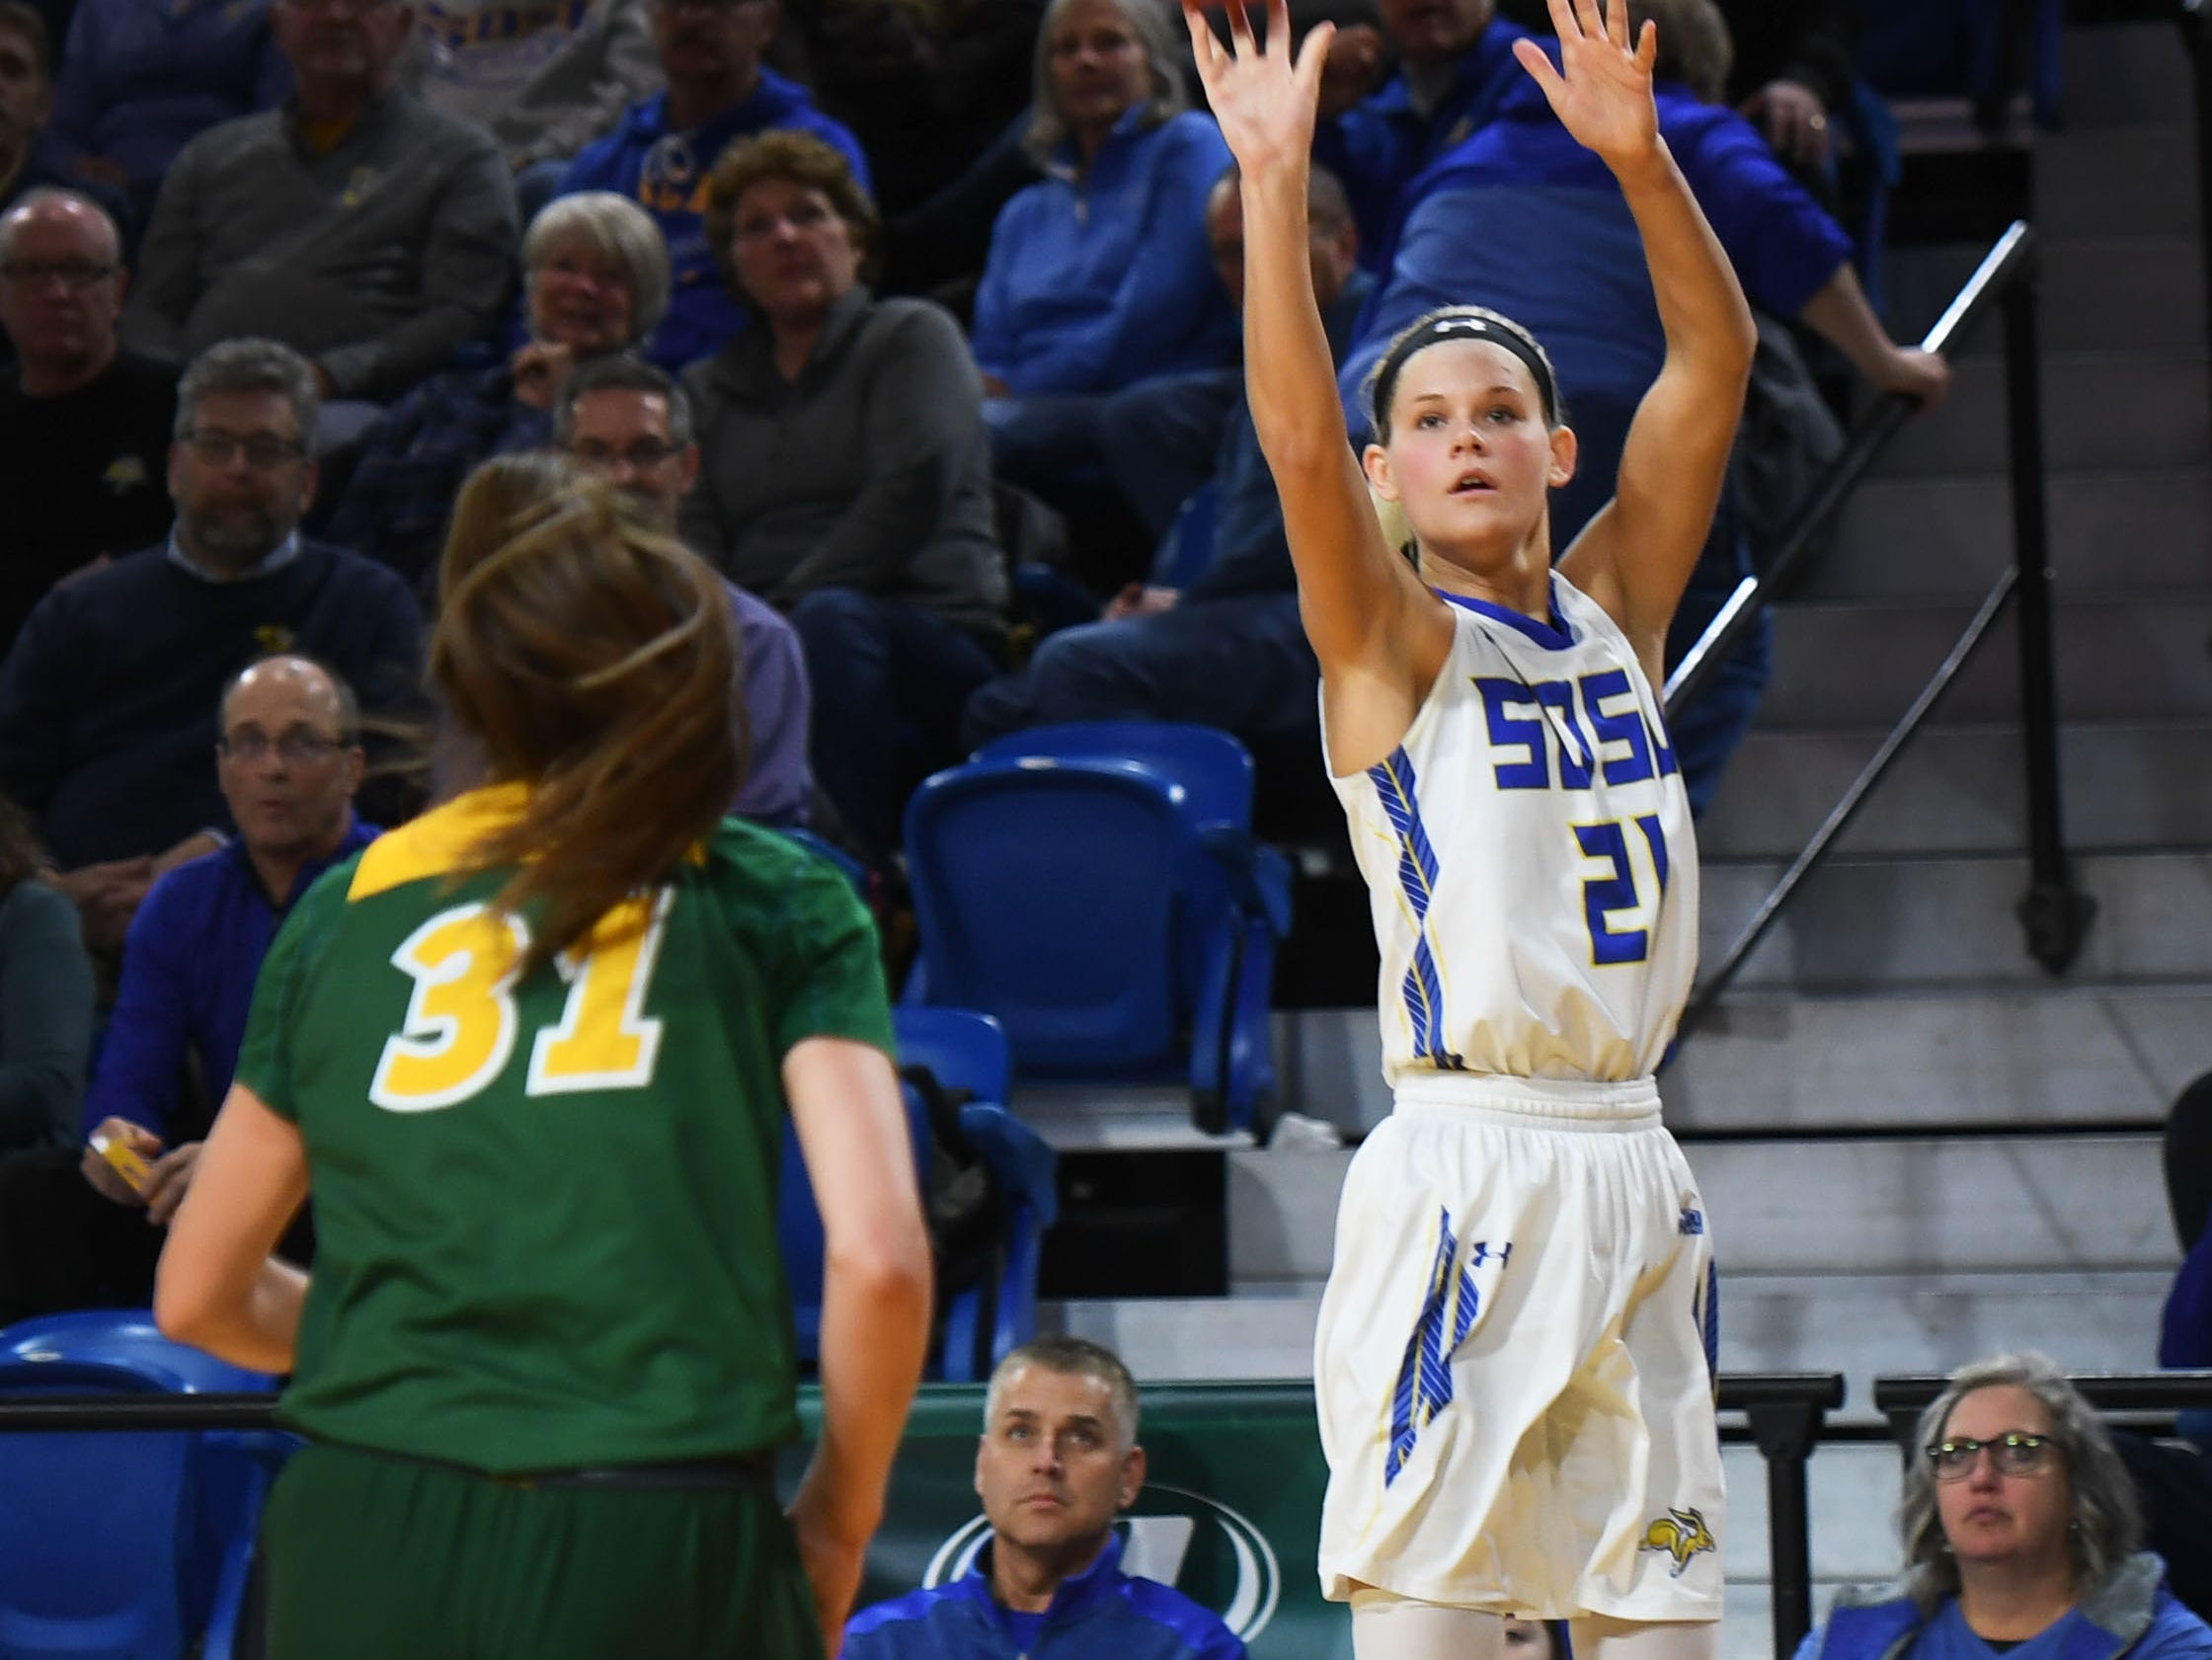 SDSU's Tylee Irwin takes a shot against NDSU during the game Wednesday, Jan. 23, at Frost Arena in Brookings.